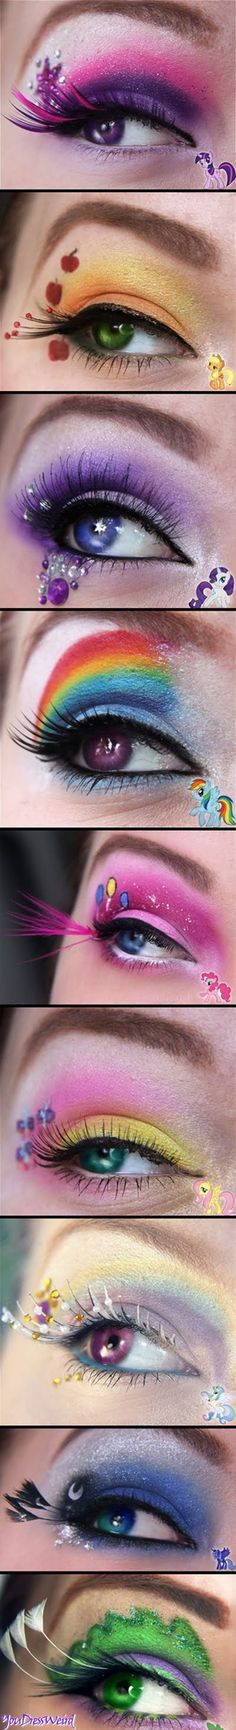 my little pony Friendship is Magic.... this is 20% cooler than anything I have seen in a LONG time! And I probably CAN do some of these eyes in 10 seconds flat! :-)